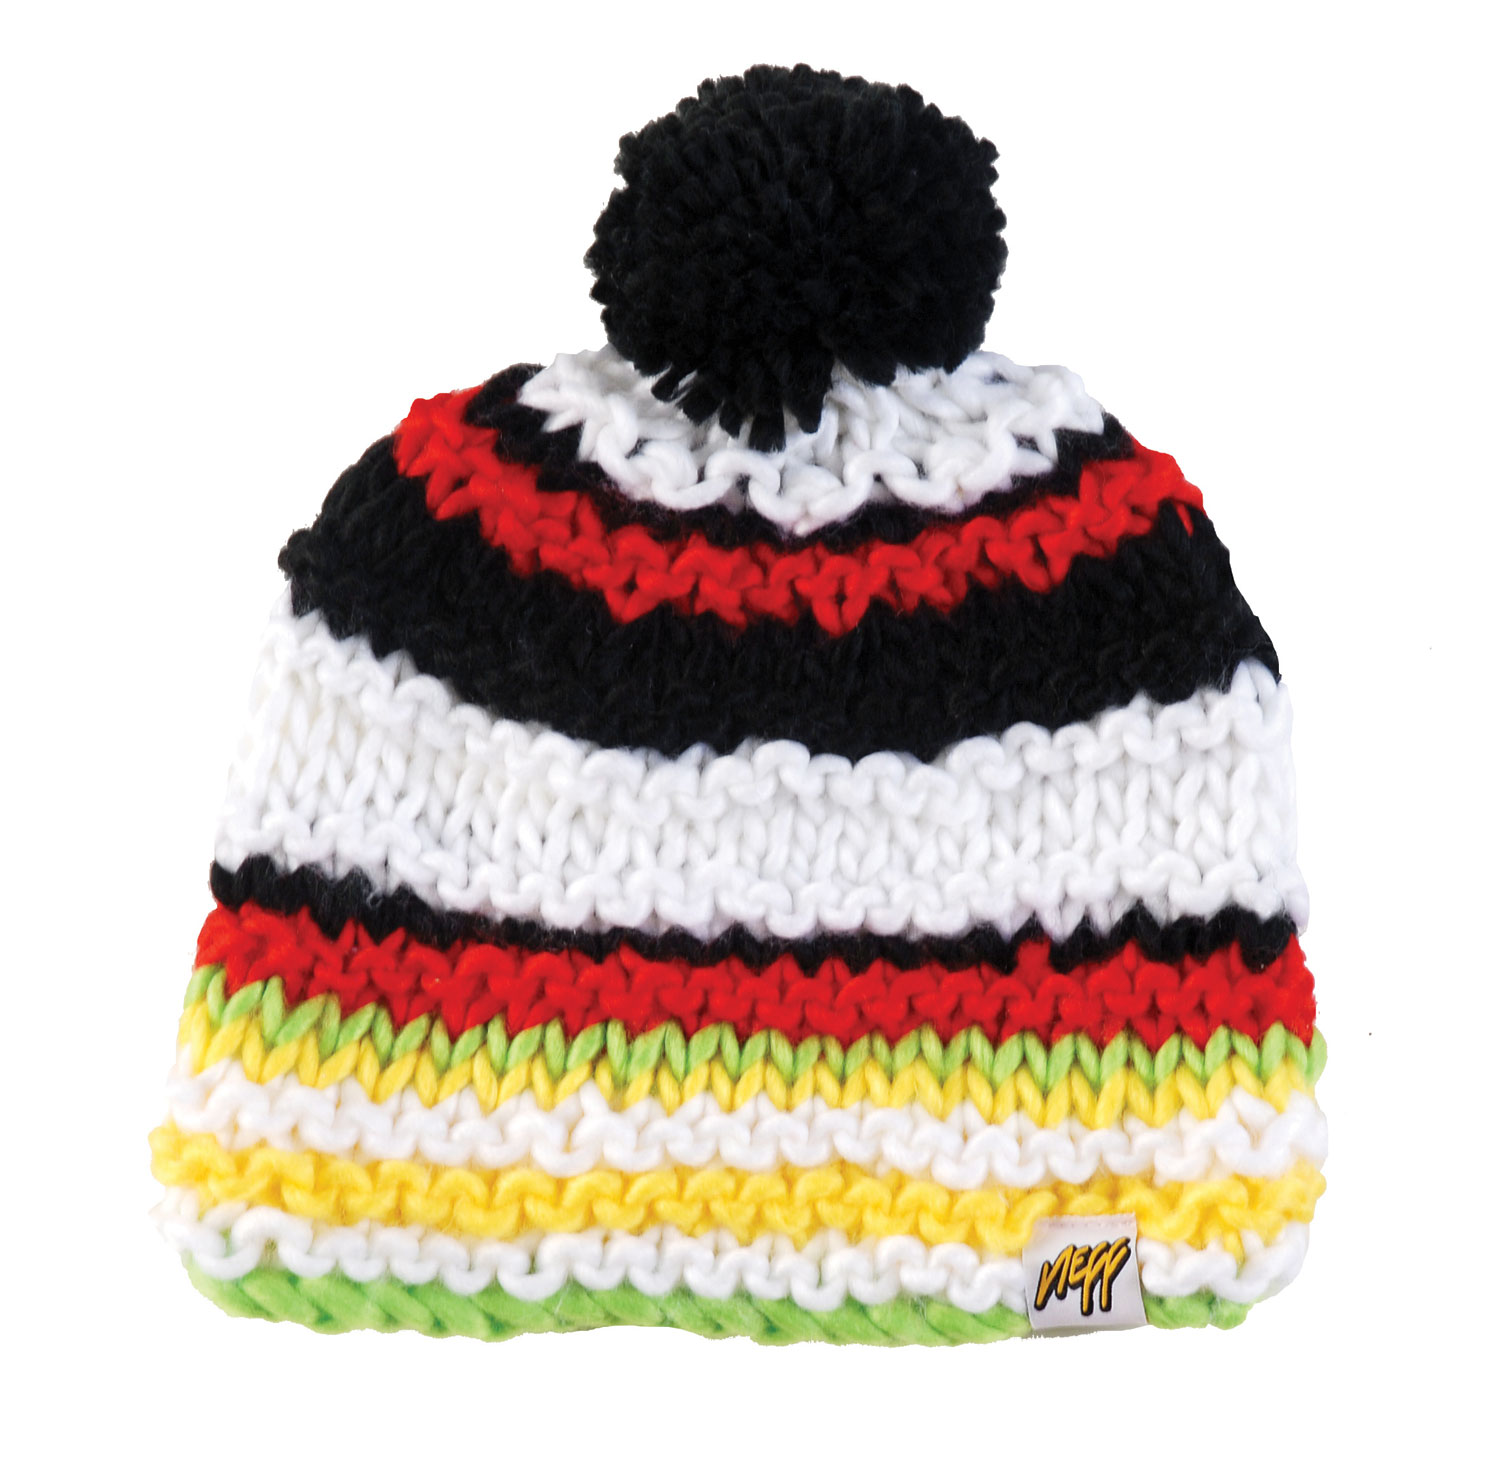 Snowboard 100% AcrylicKey Features of the Neff Bozo Beanie: 100% Acrylic Skull Fit with TASTEFUL Pompom - $14.45